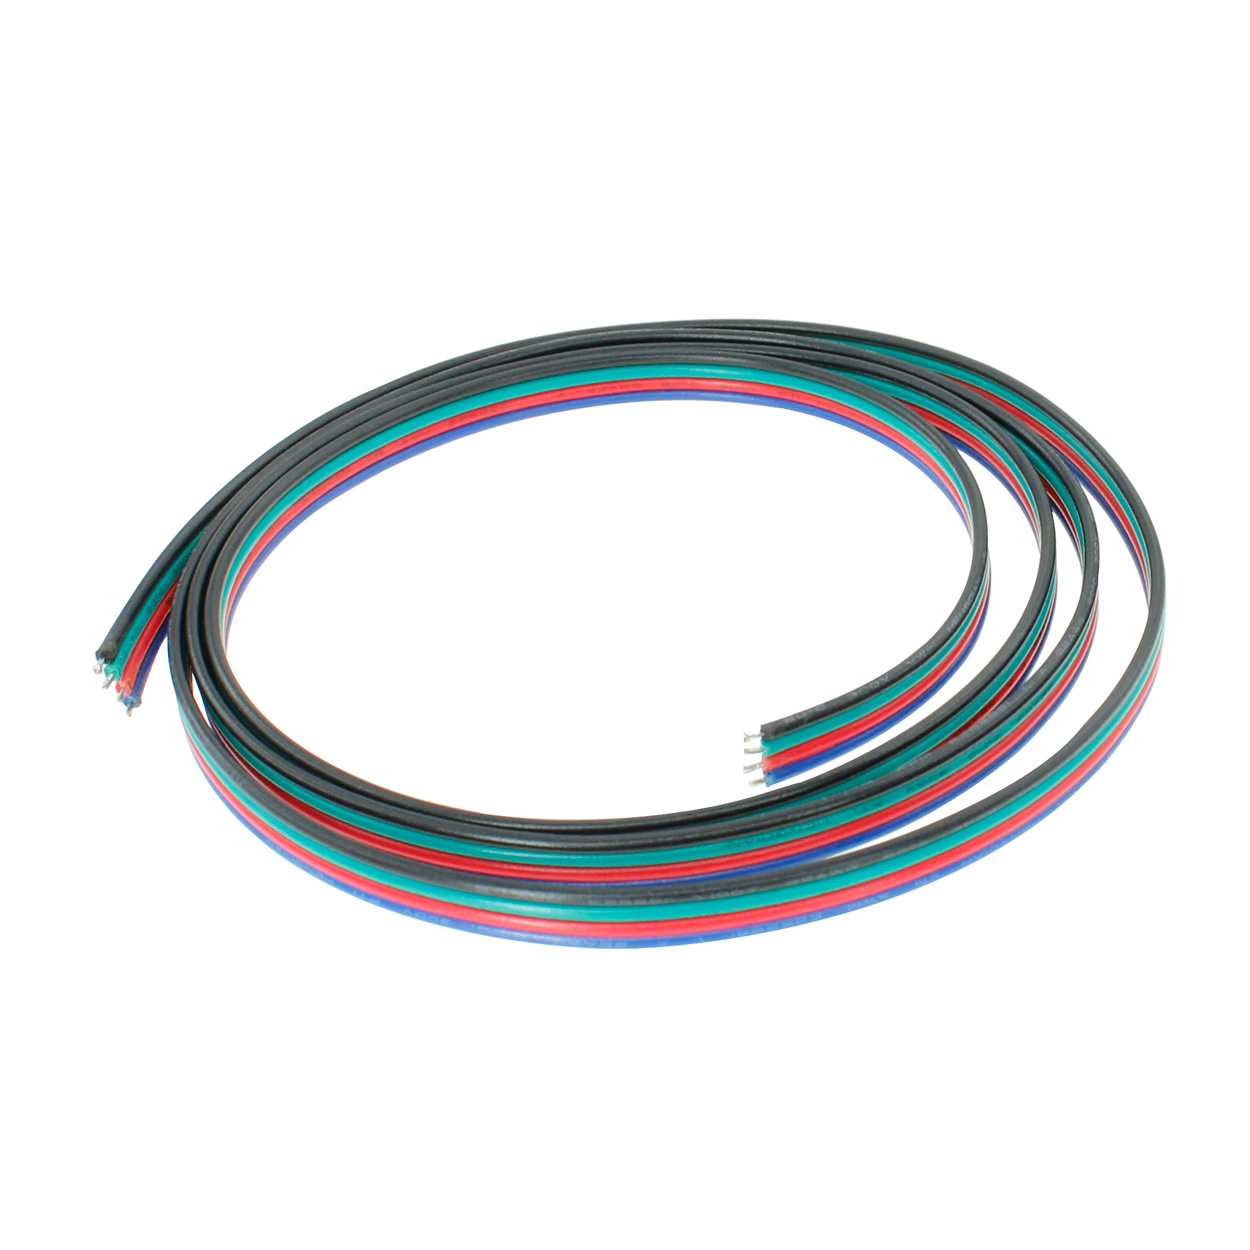 hight resolution of 4 wire 18awg power cable for rgb led light strips 20 meter 66ft pi manufacturing